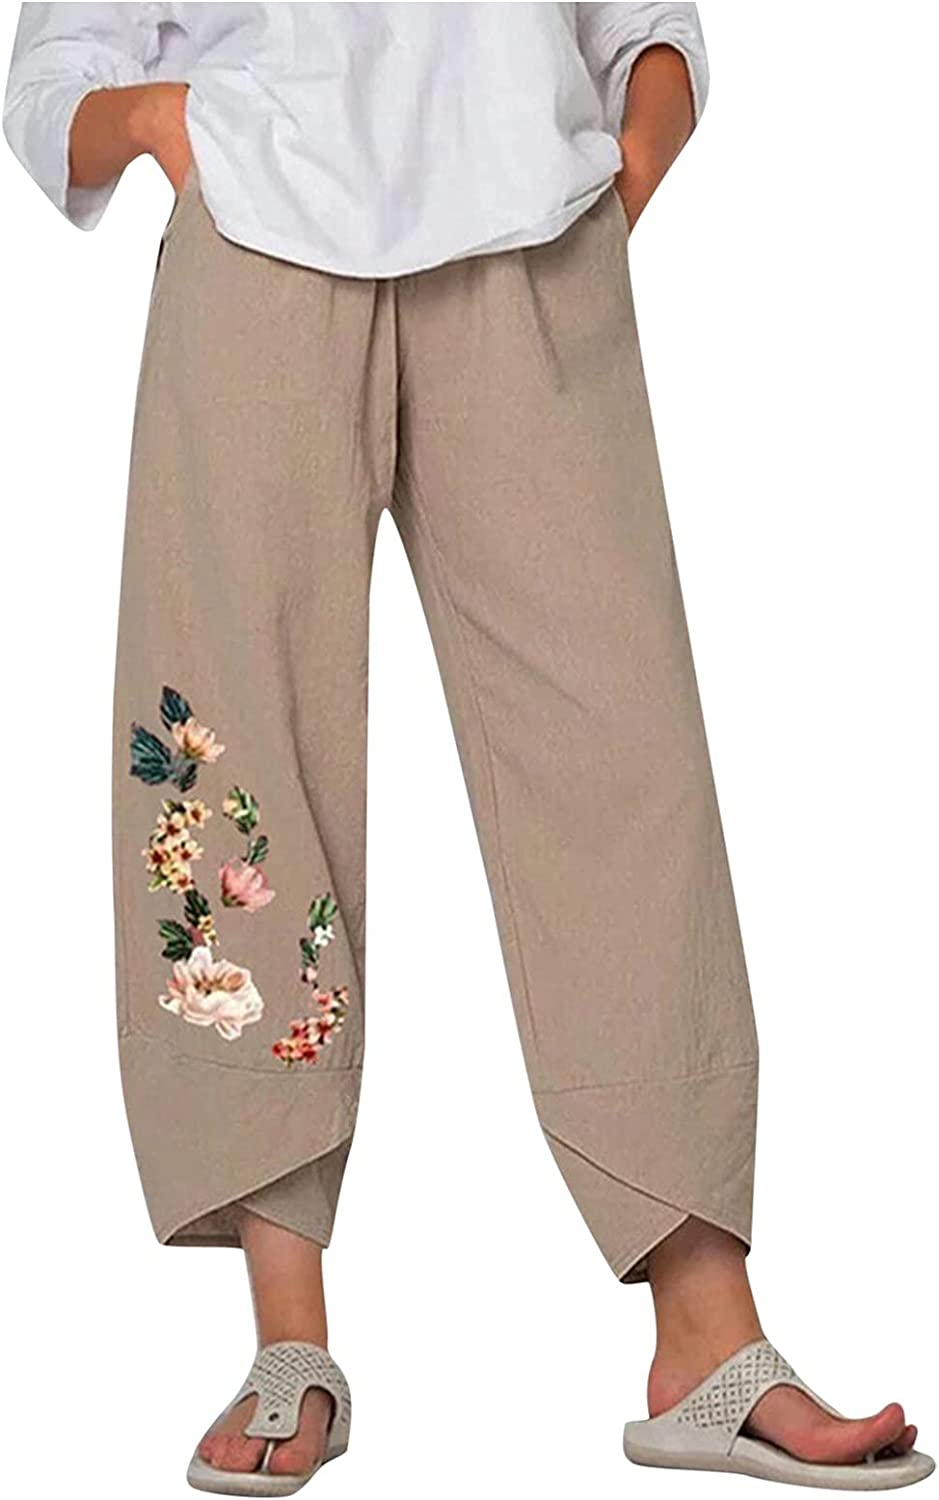 Wabtum Summer Pants for Women Cotton Lin quality assurance Printing Casual Indefinitely Women's